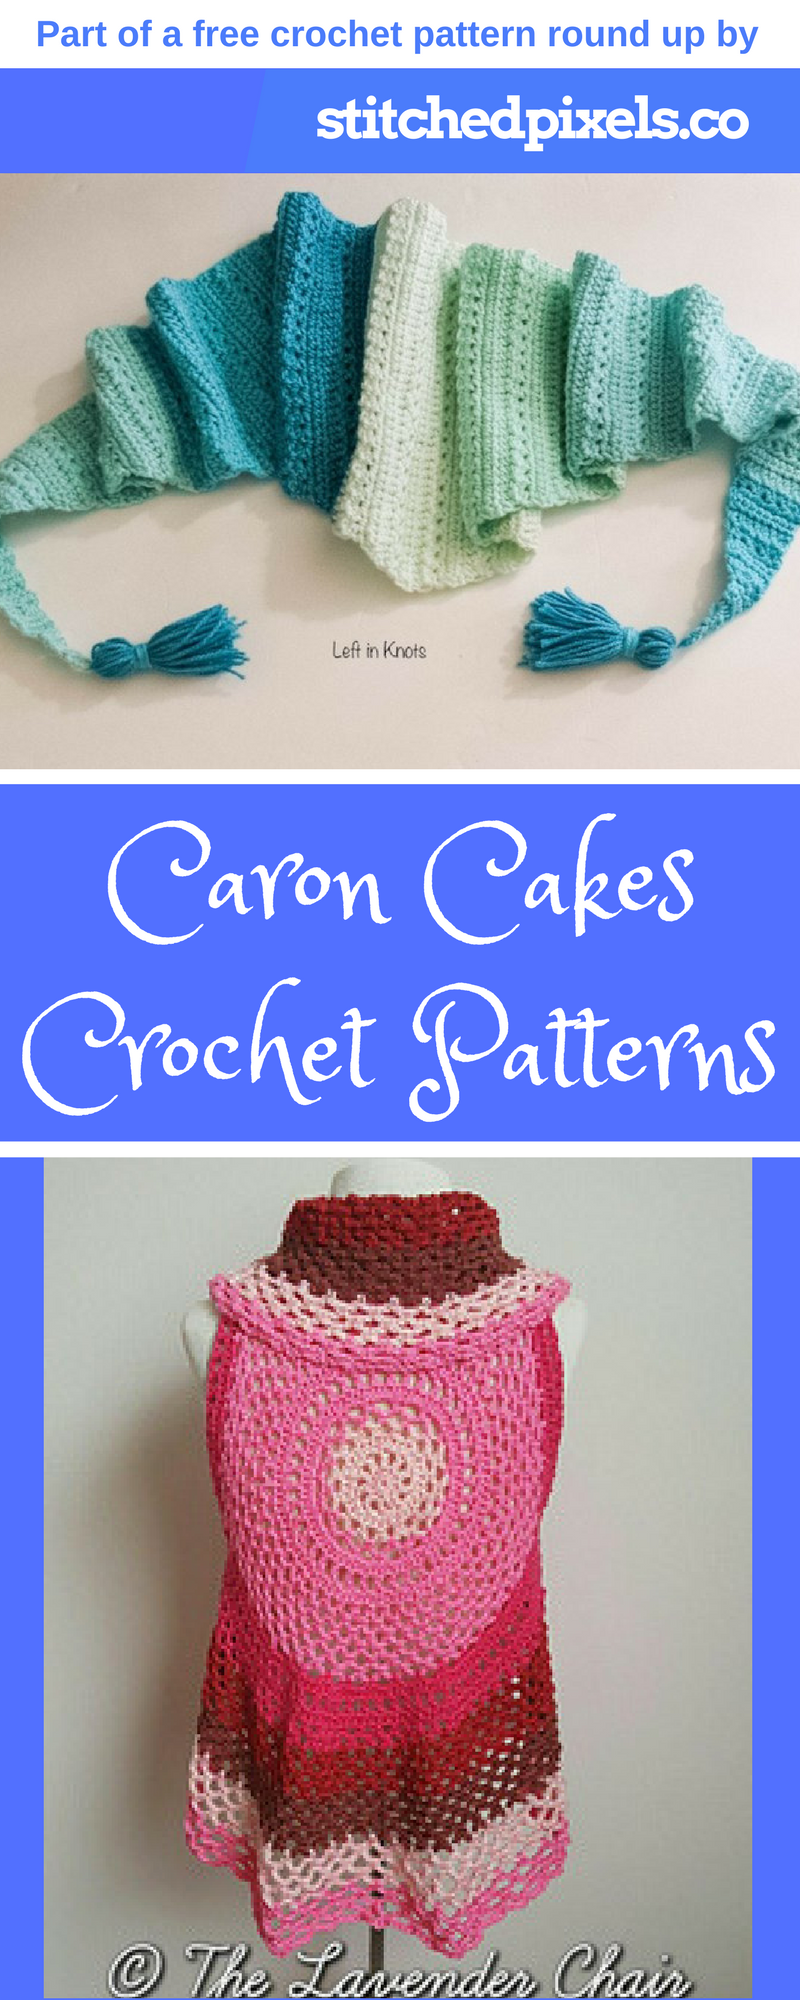 Check out the caron cakes free crochet pattern round up there are check out the caron cakes free crochet pattern round up there are 12 free pattern bankloansurffo Images